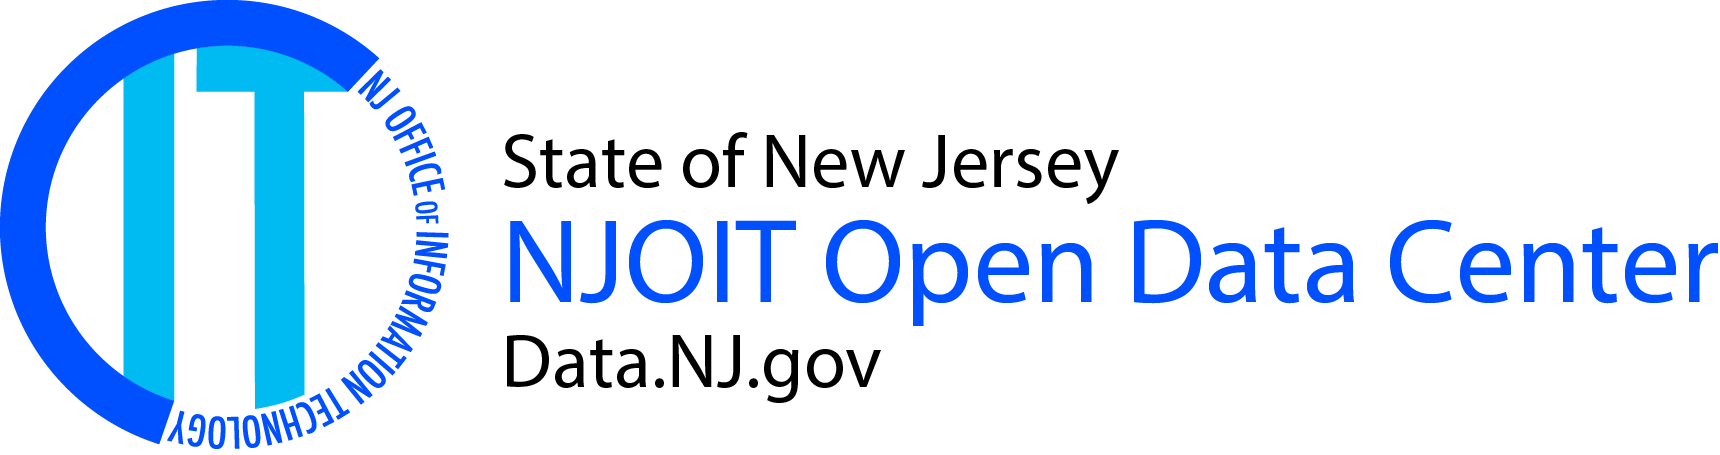 nj-oit.demo.socrata.com